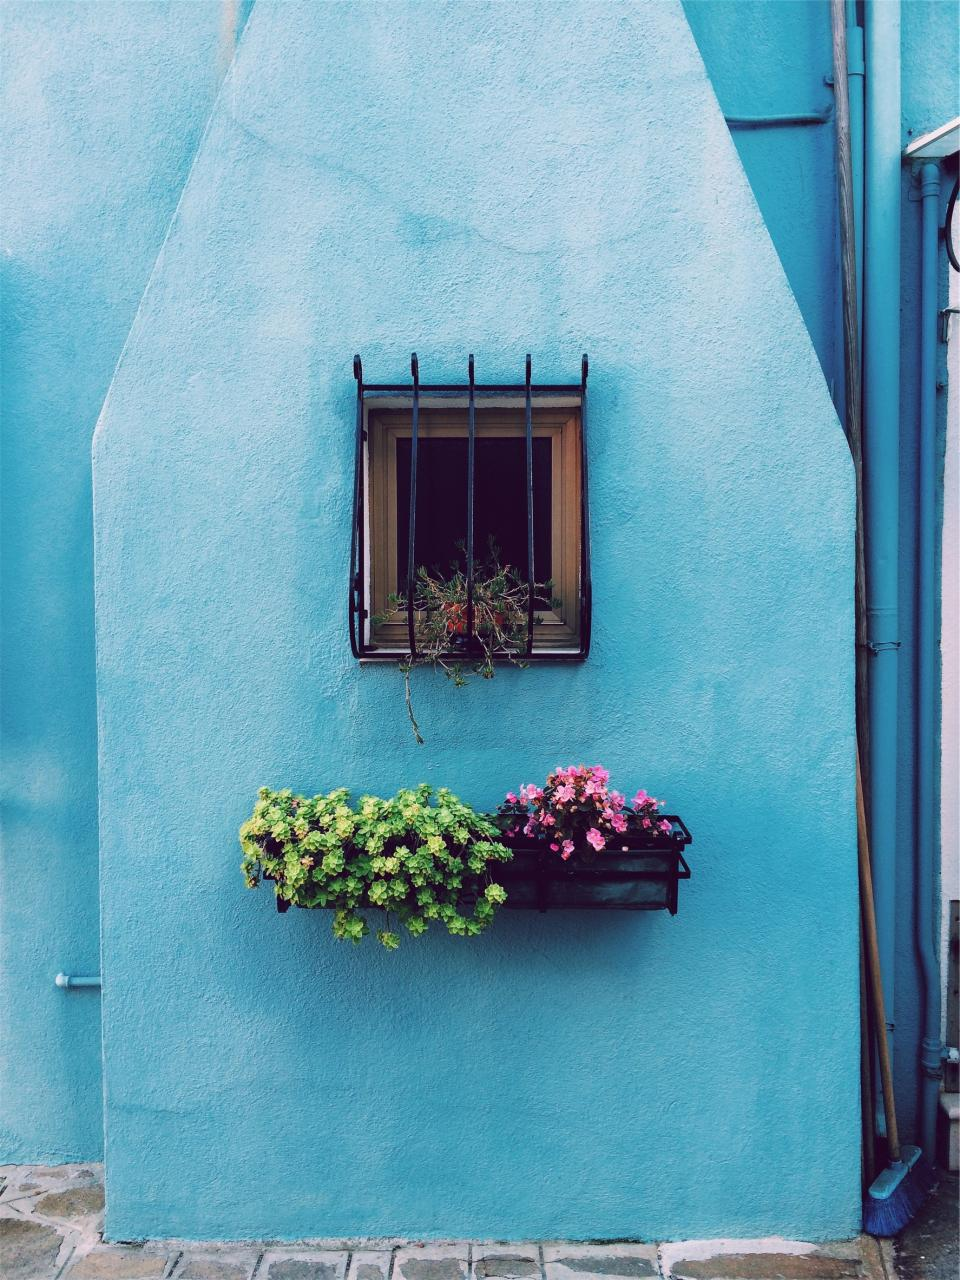 flowers basket pots window bars blue wall house